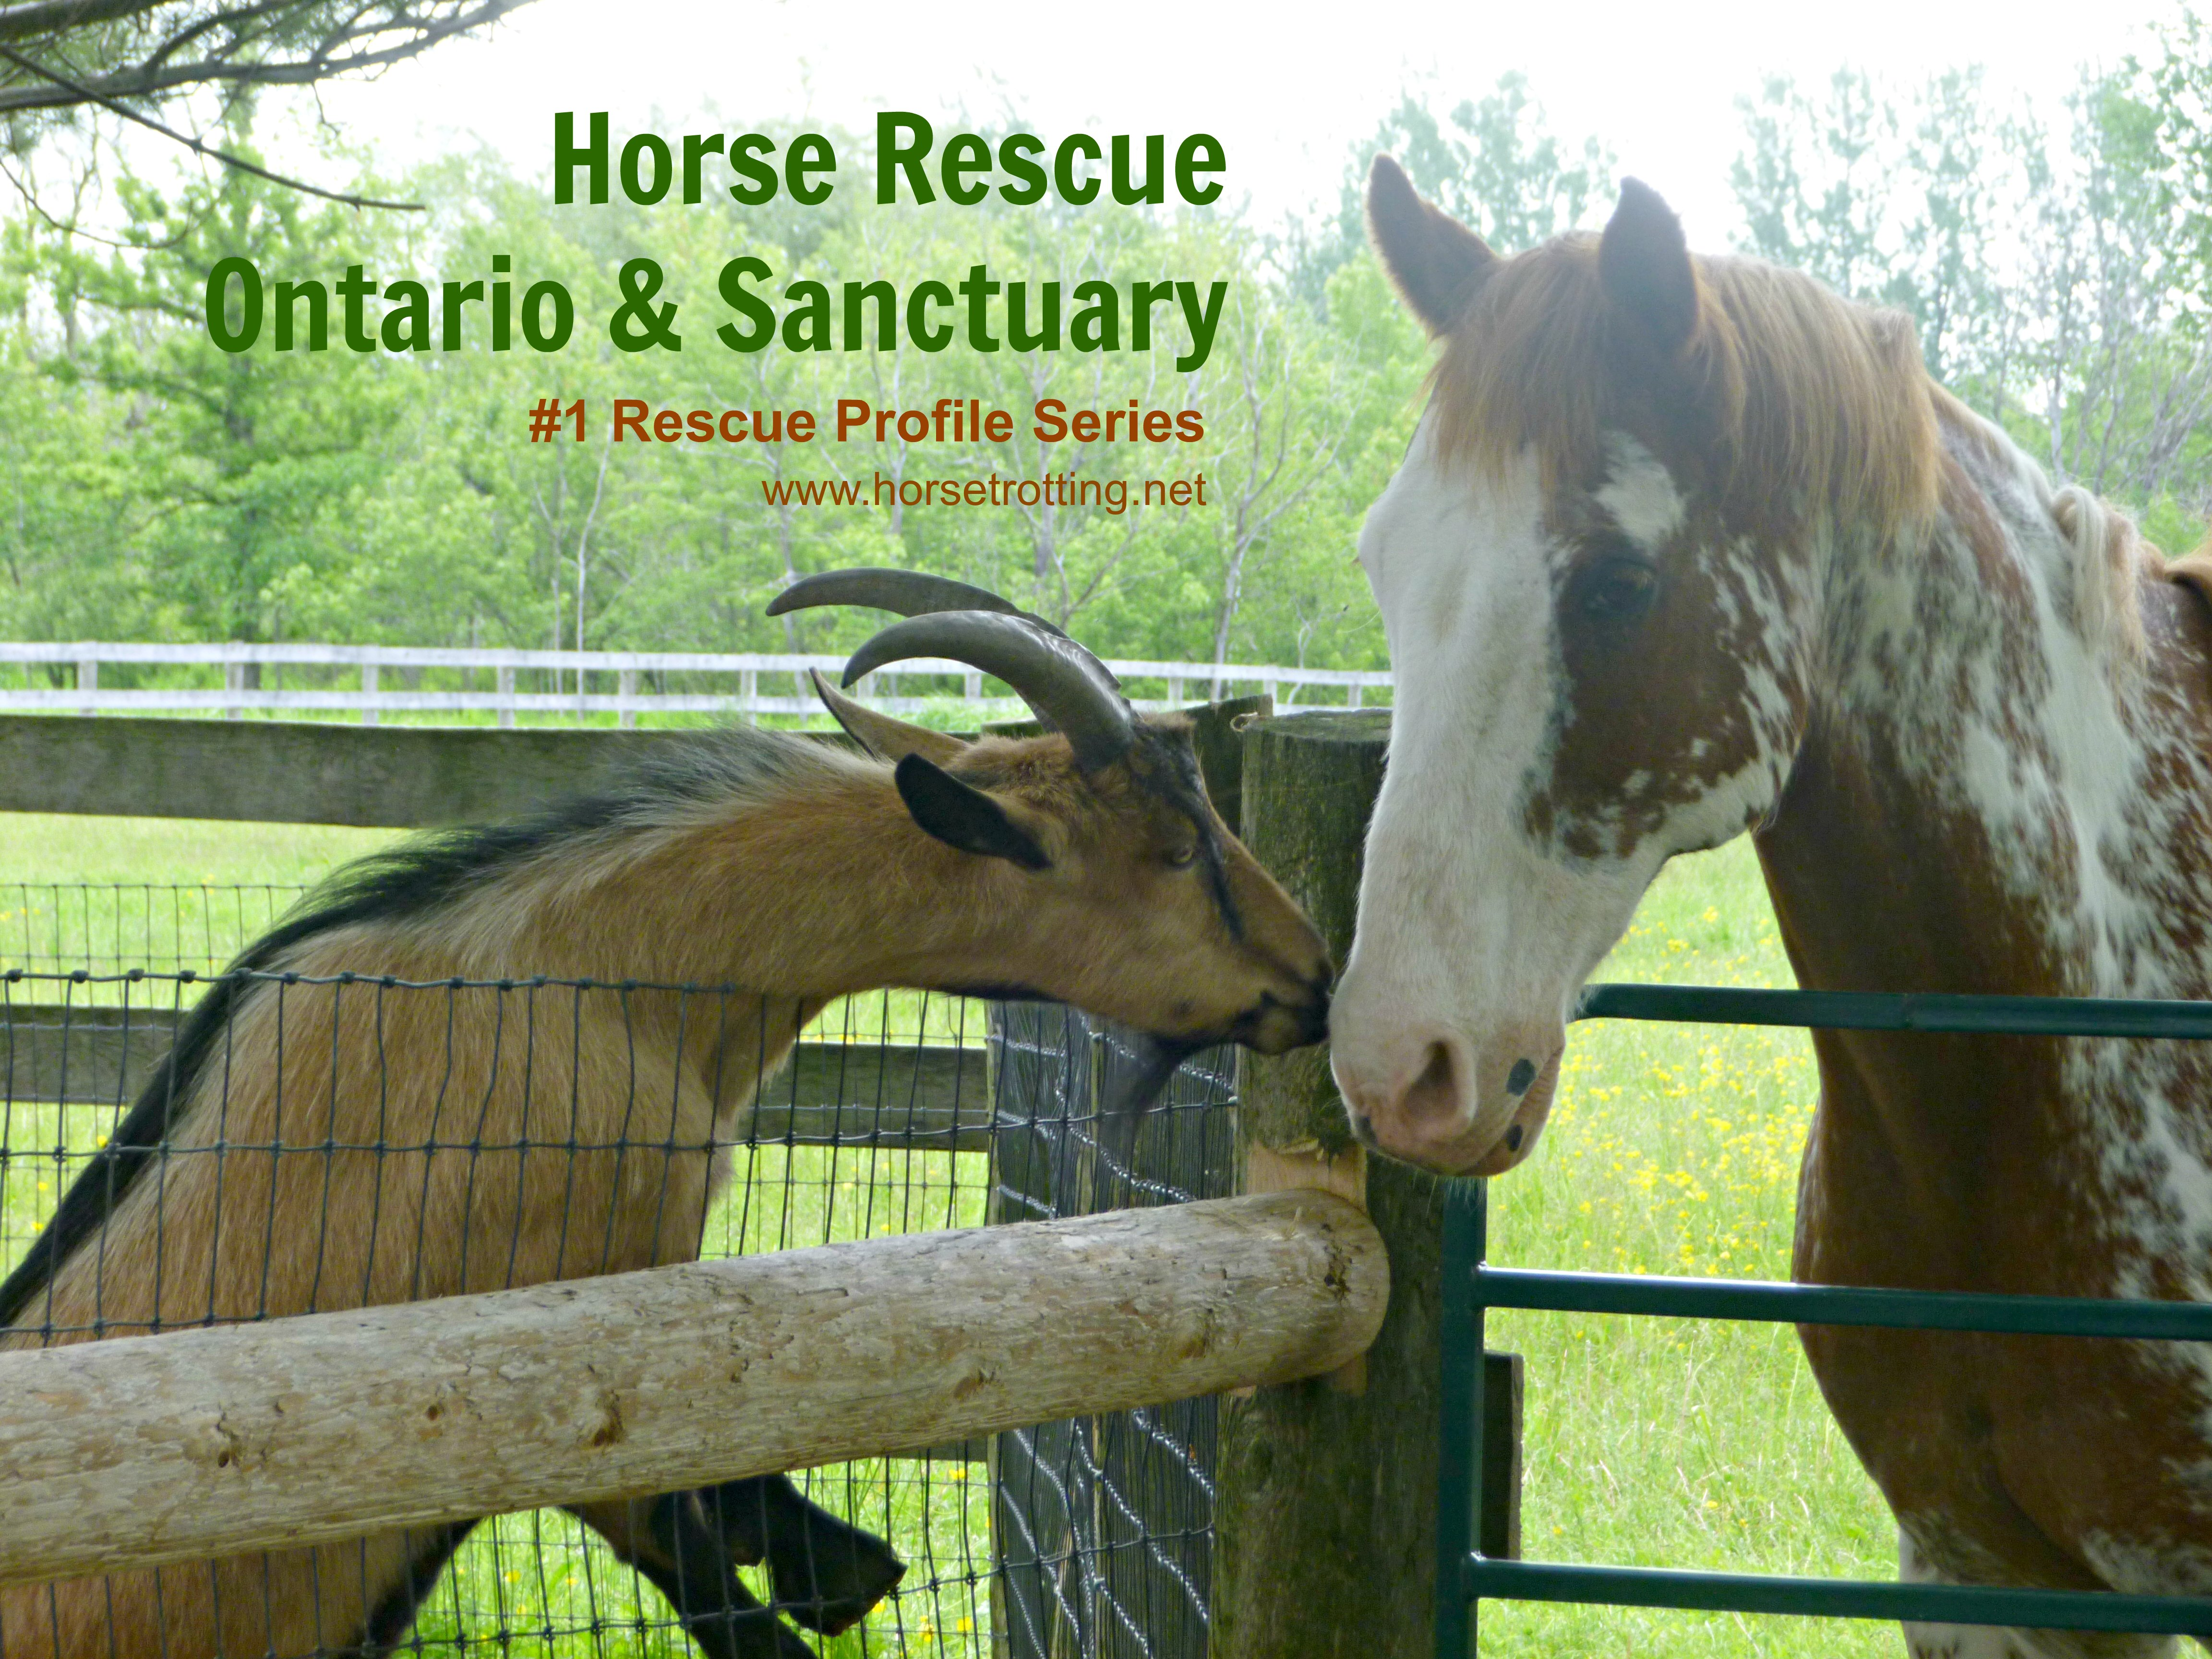 A Year of Profiling Heroes: Horse Rescue Ontario & Sanctuary (for 20 equine) #1